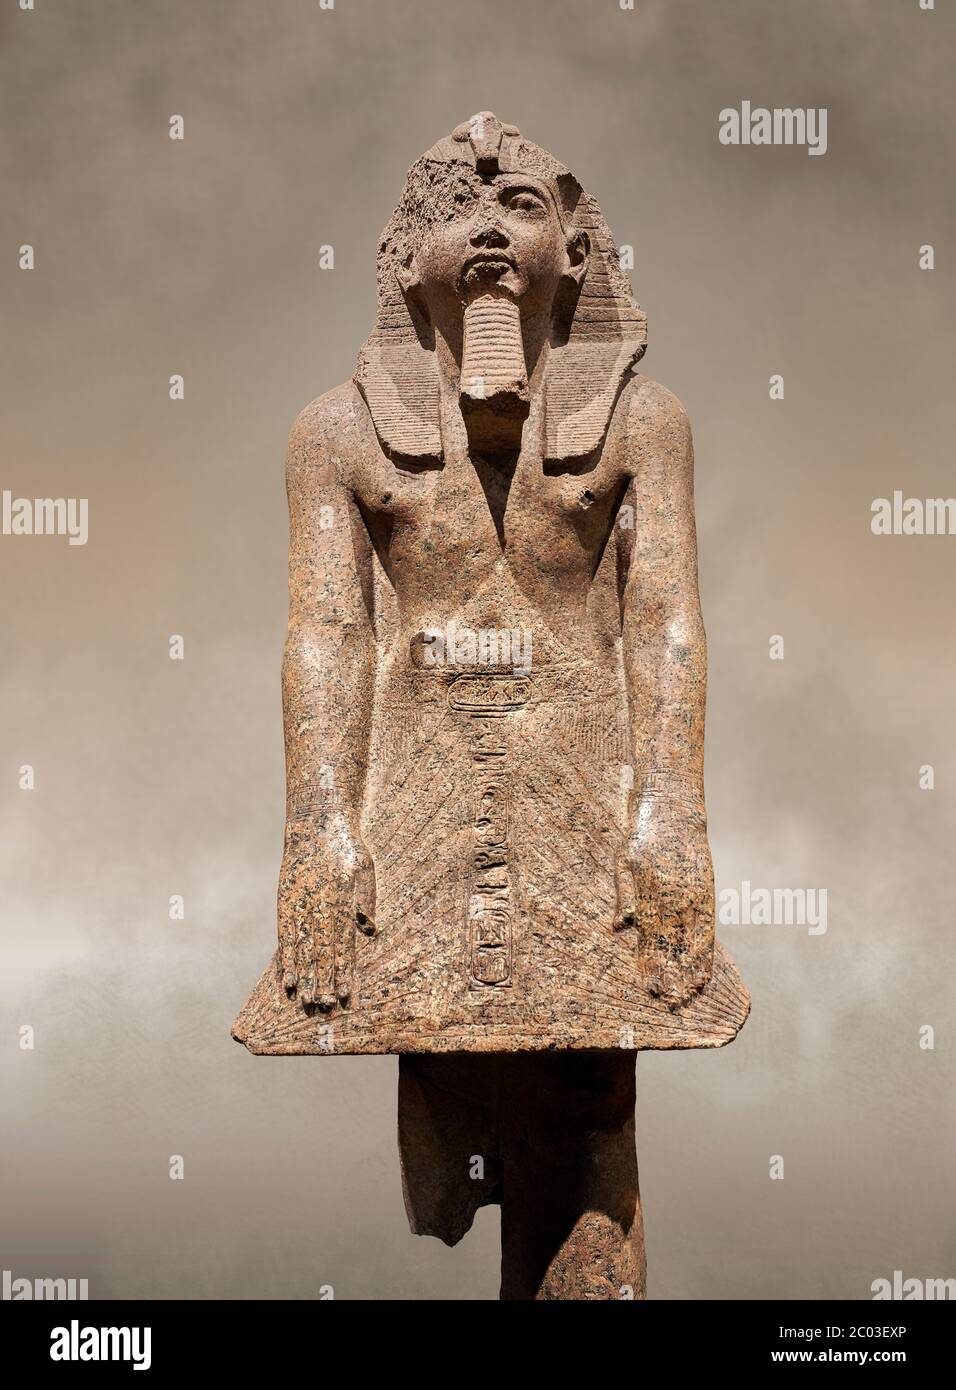 Ancient Egyptian statue of Ramesses II , granite, New Kingdom, 18th Dynasty, (1500-1400 BC, Karnak, Temple of Mut. Egyptian Museum, Turin. Grey backgr Stock Photo